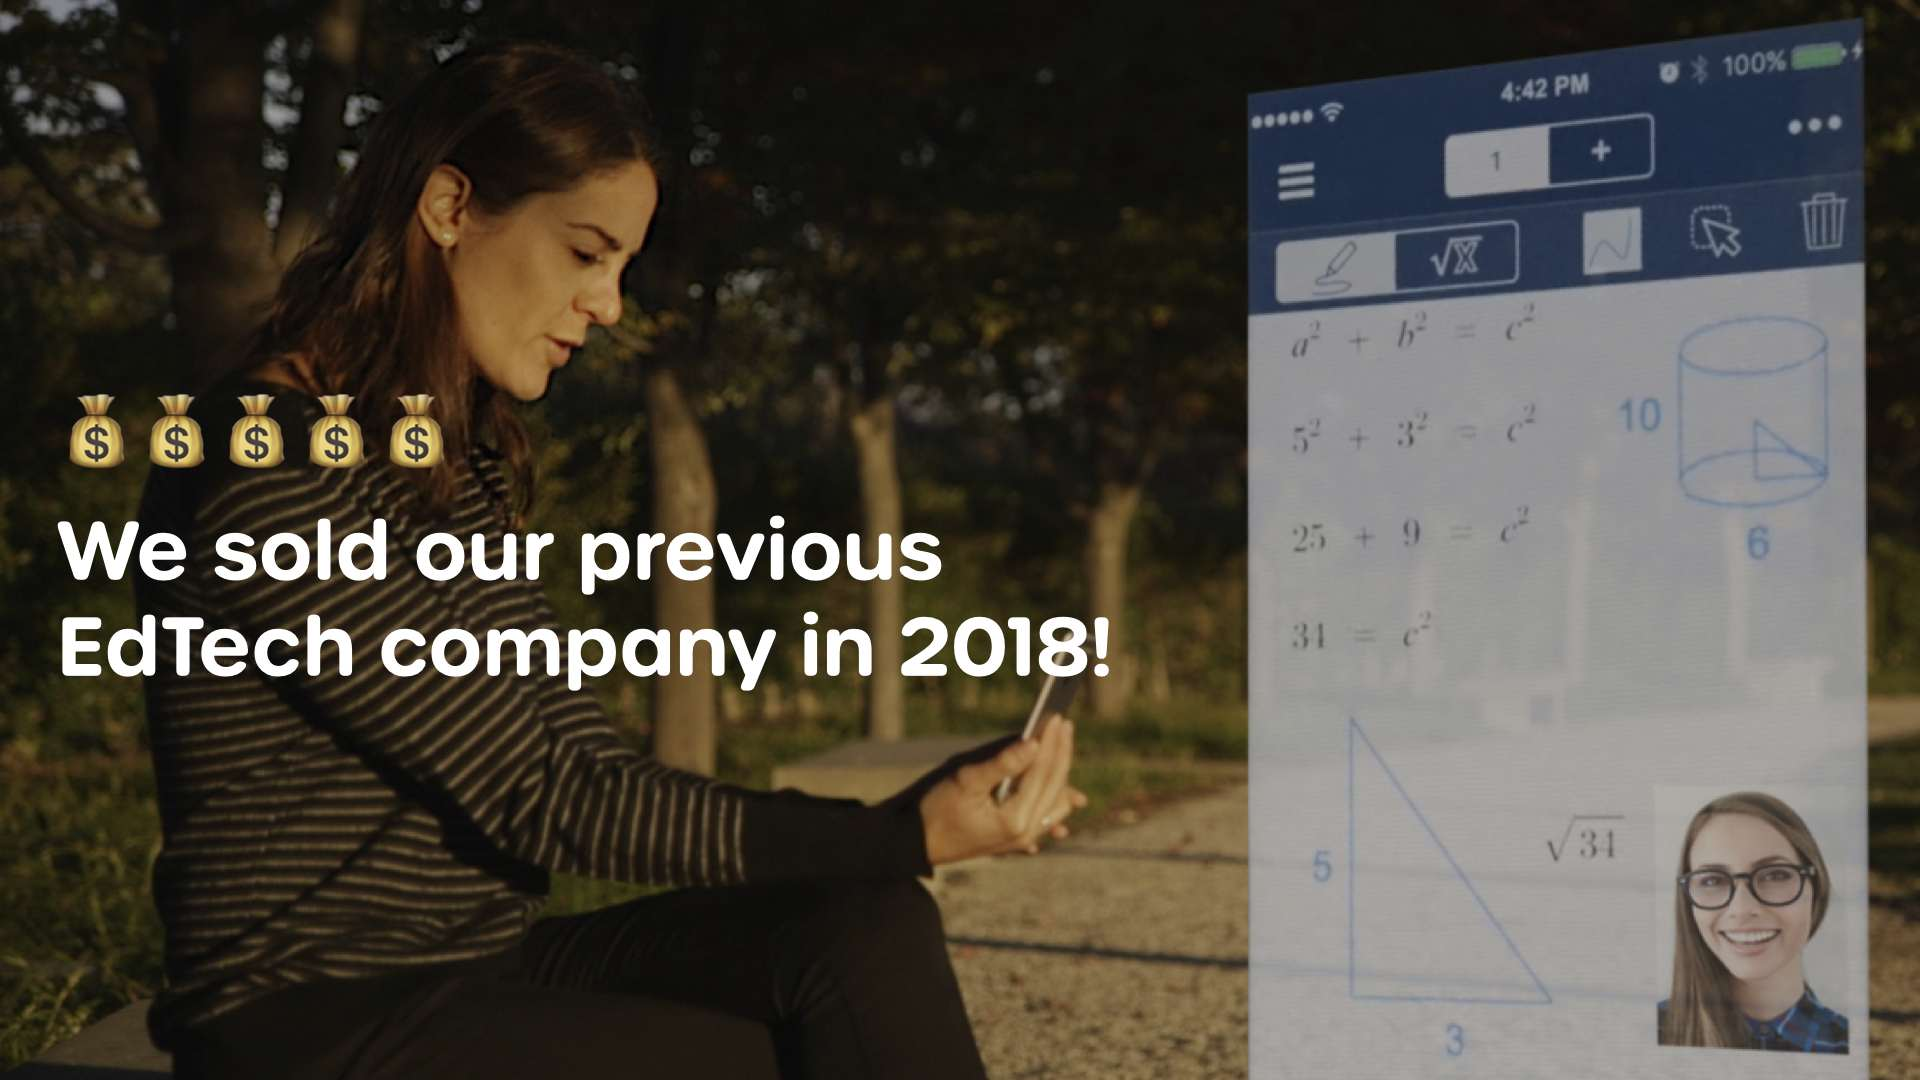 We sold our previous EdTech company in 2018!